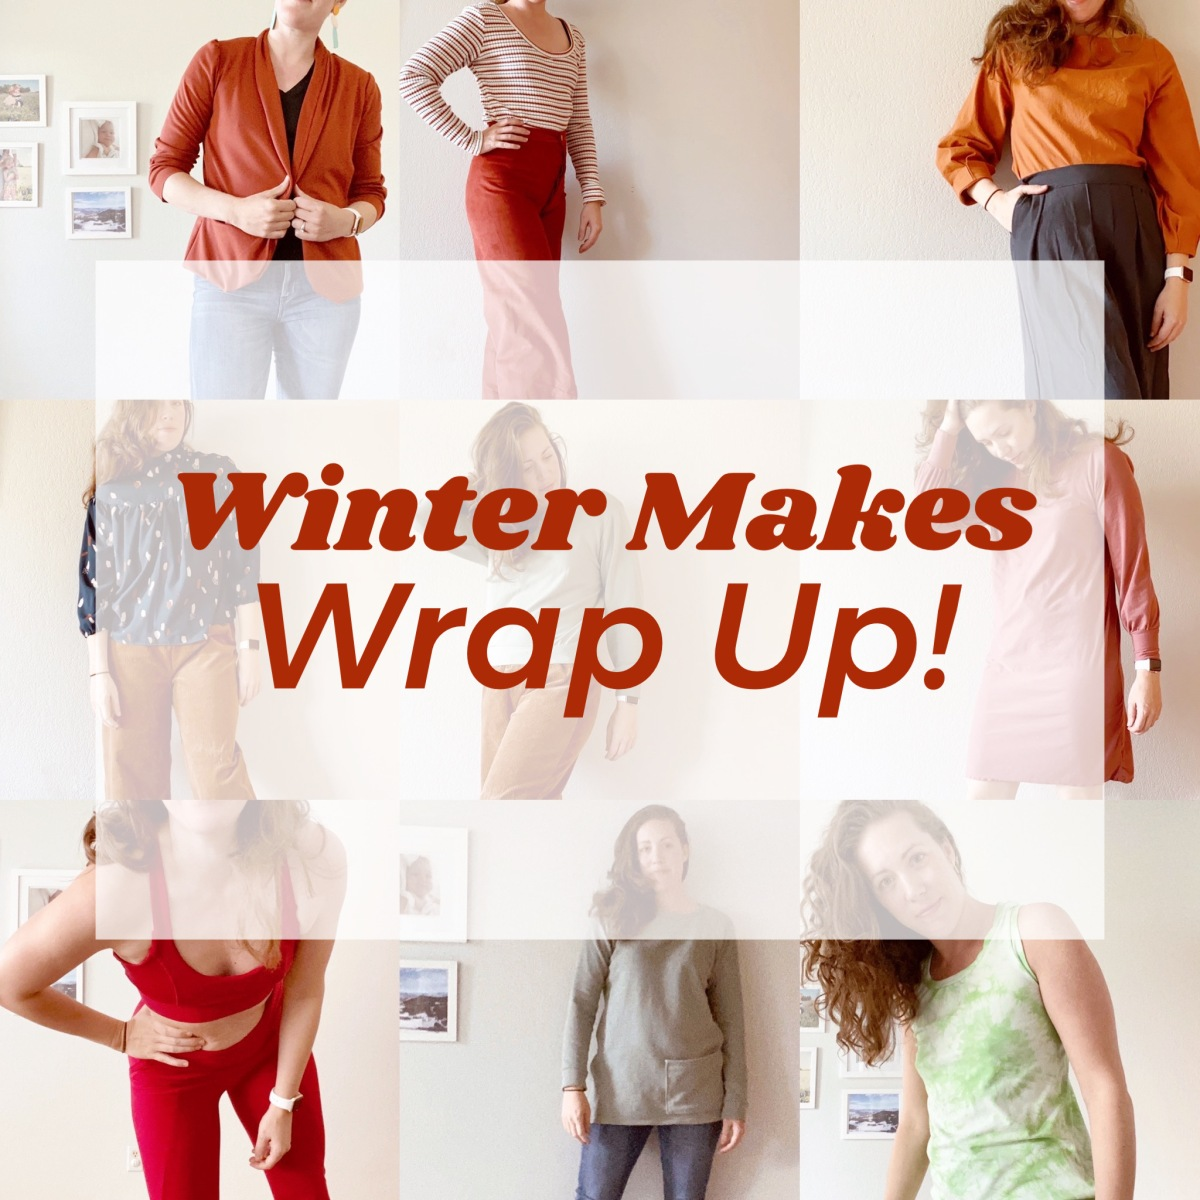 Winter Makes Wrap Up!